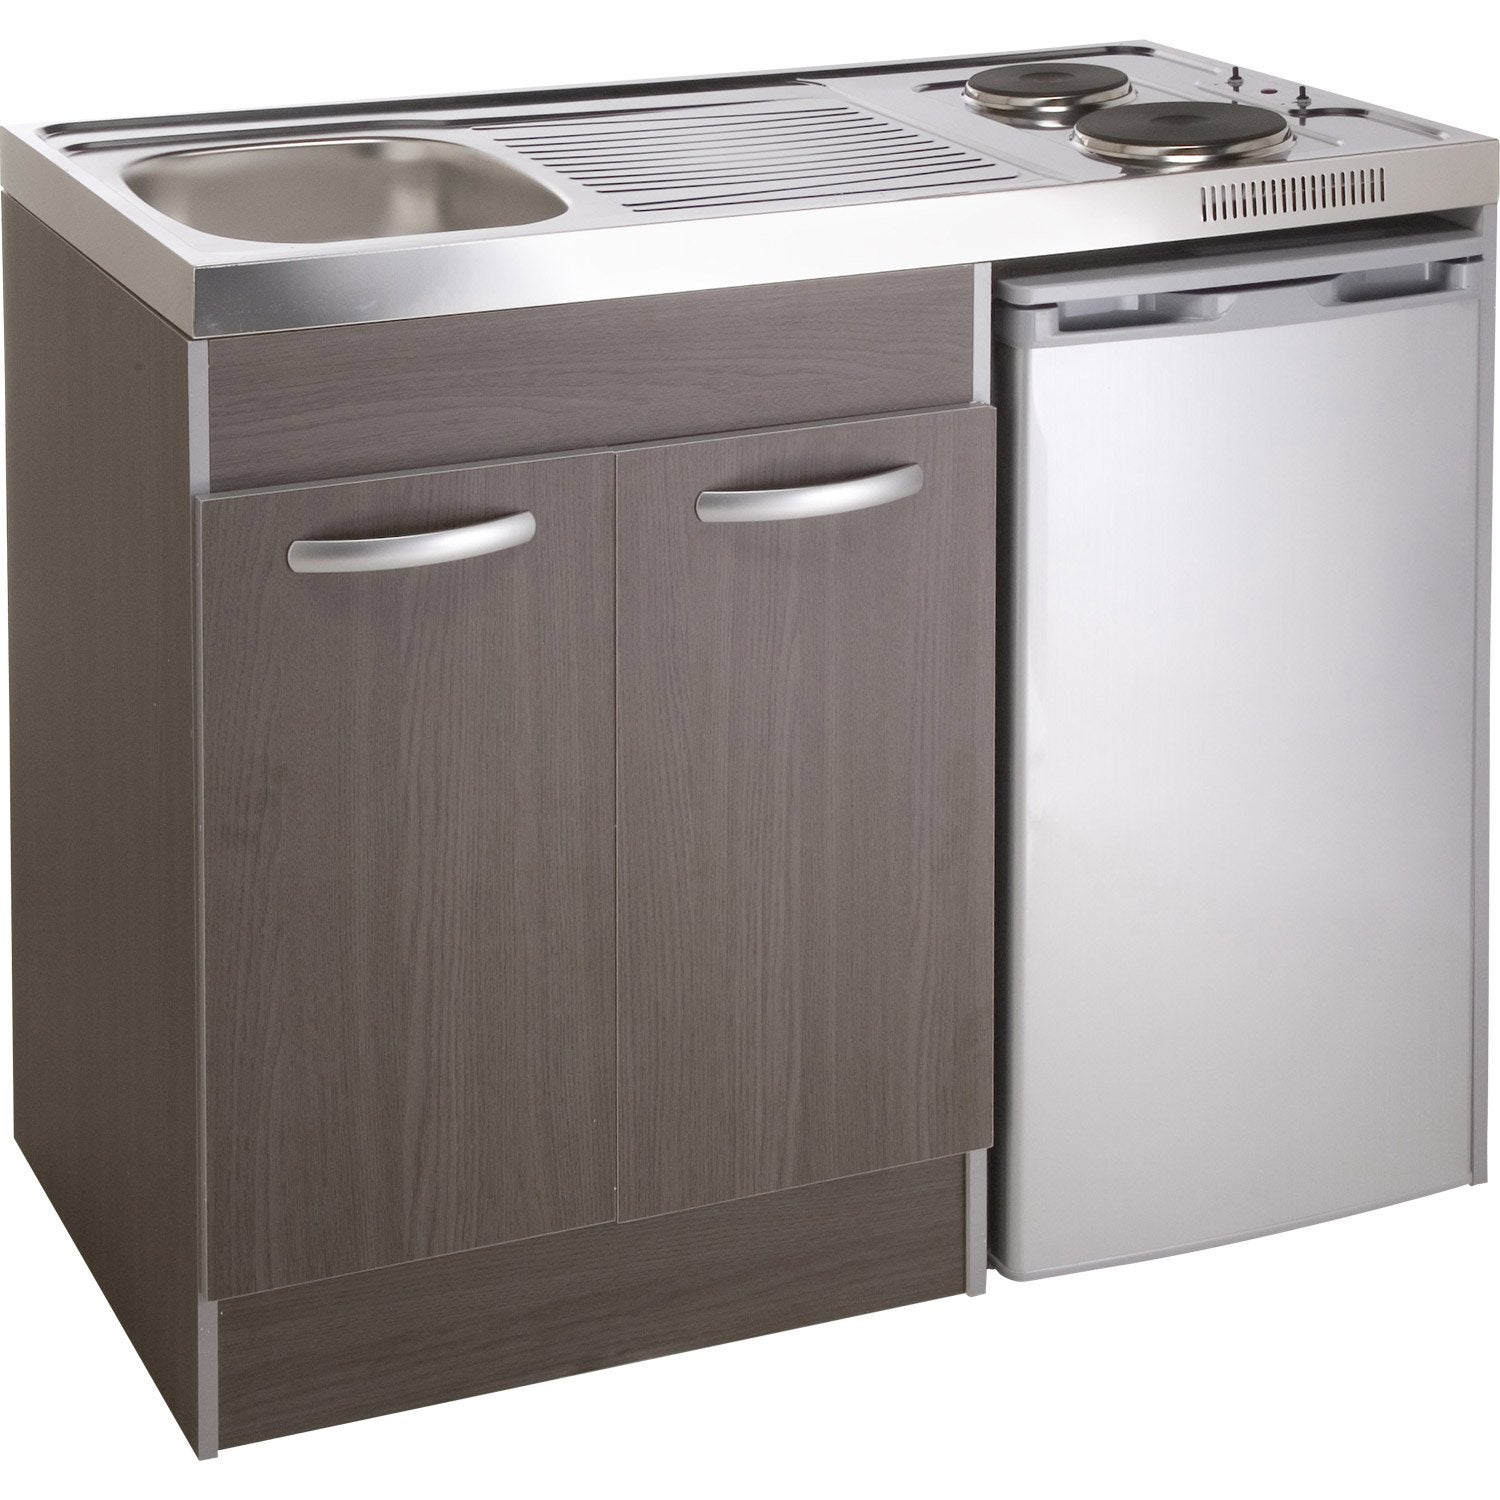 Kitchenette electrique imitation ch ne galiano spring x x c - Kitchenette pour studio ...